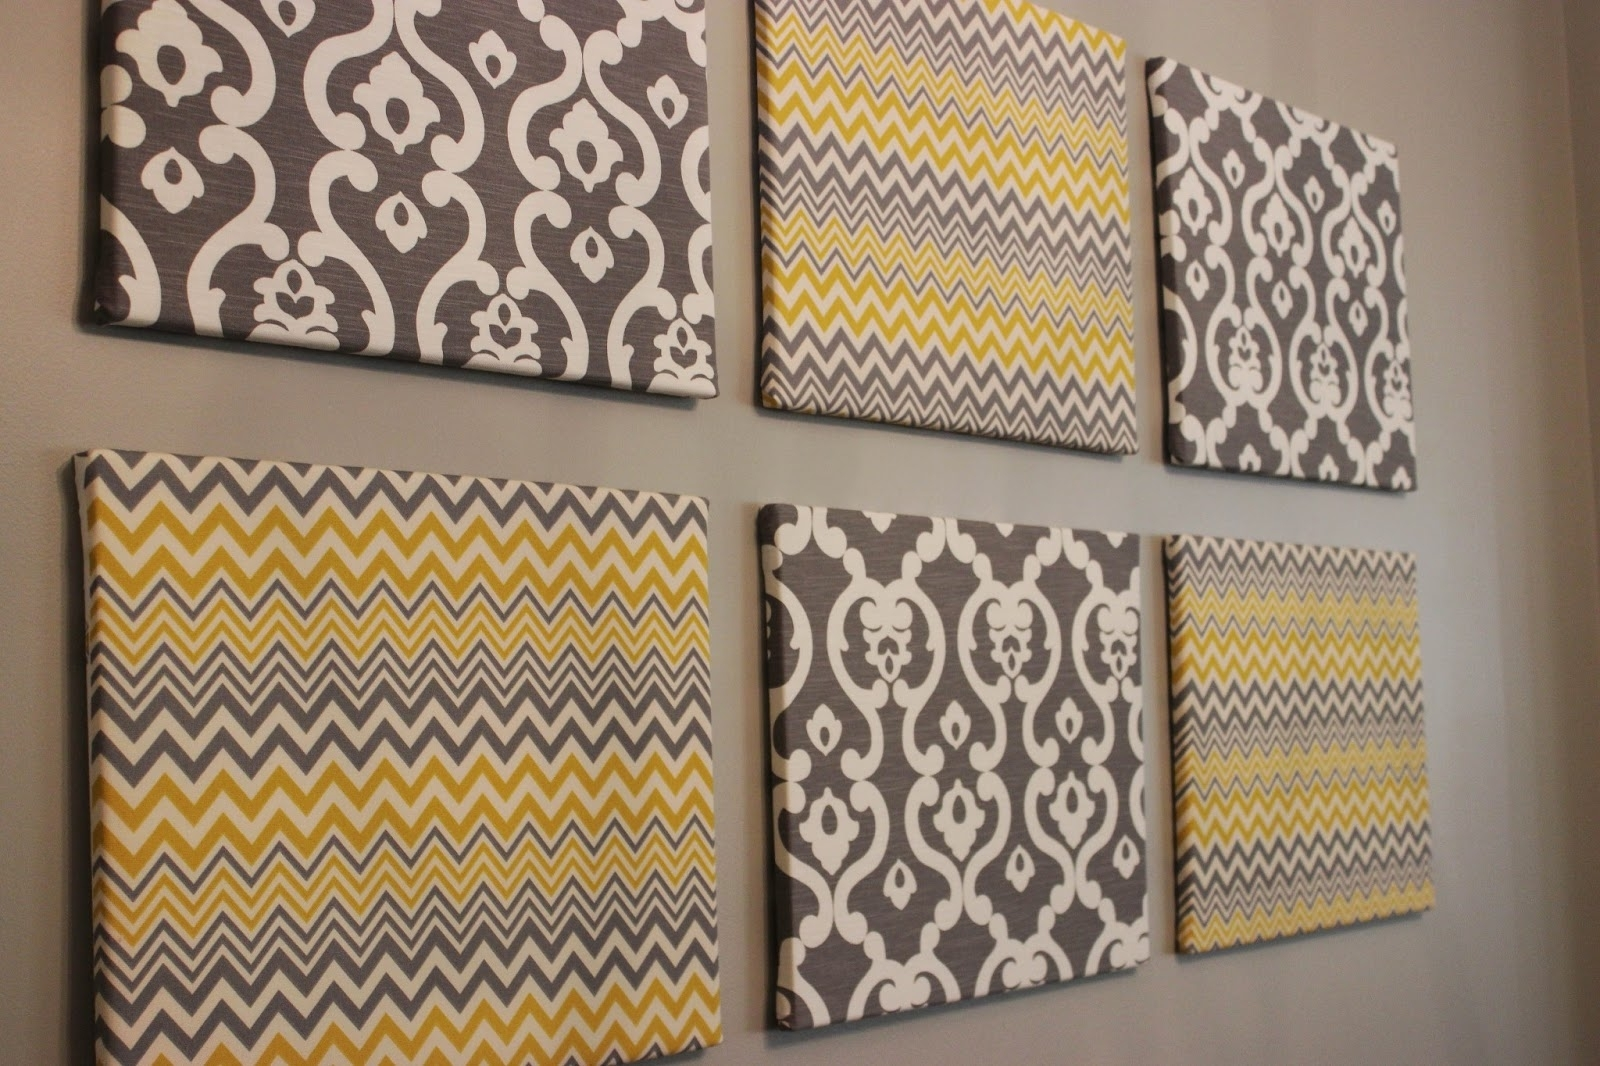 Art: Diy Canvas Wall Art Ideas Within Favorite High End Fabric Wall Art (View 3 of 15)